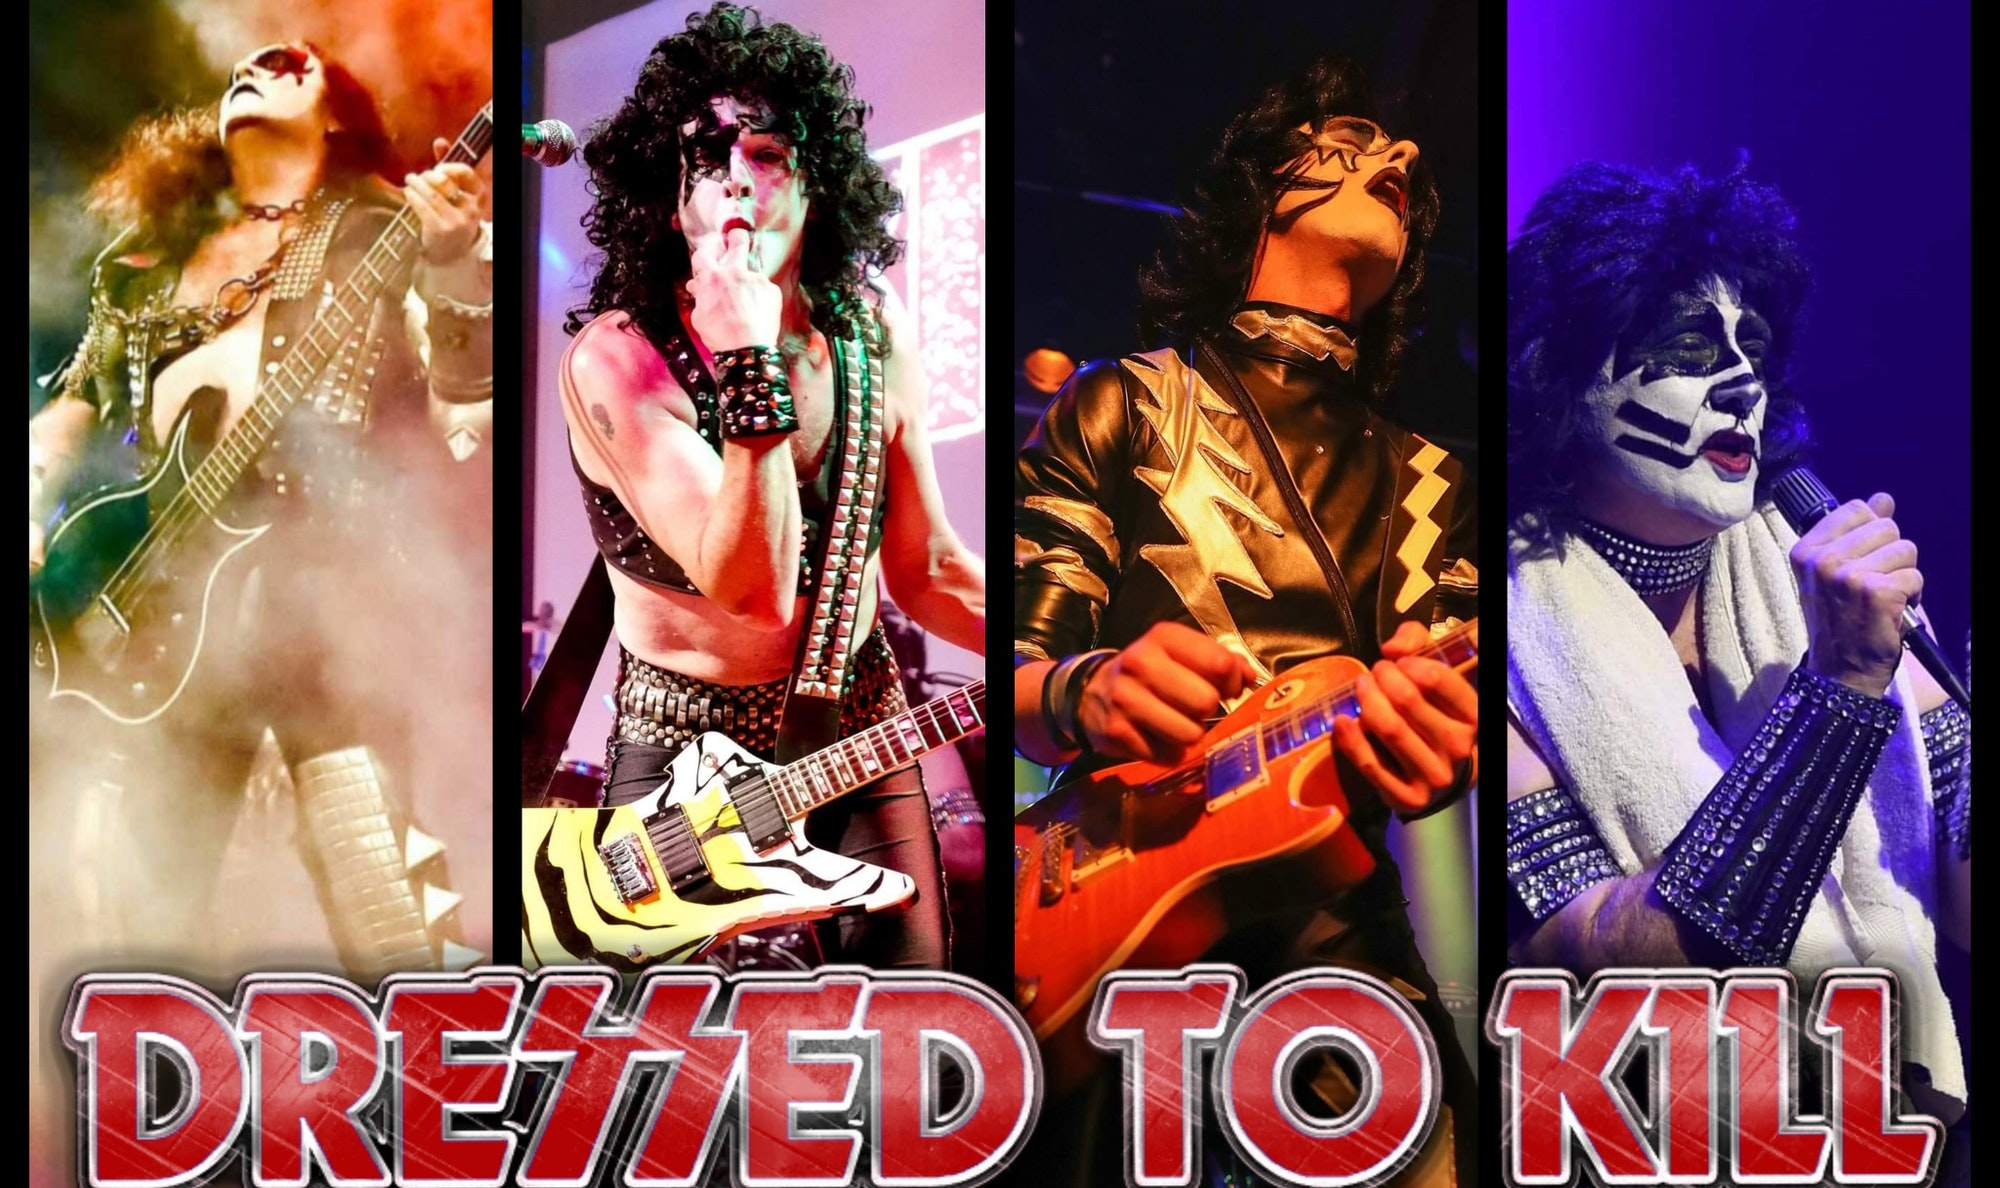 Dressed To Kill – A Tribute To Kiss